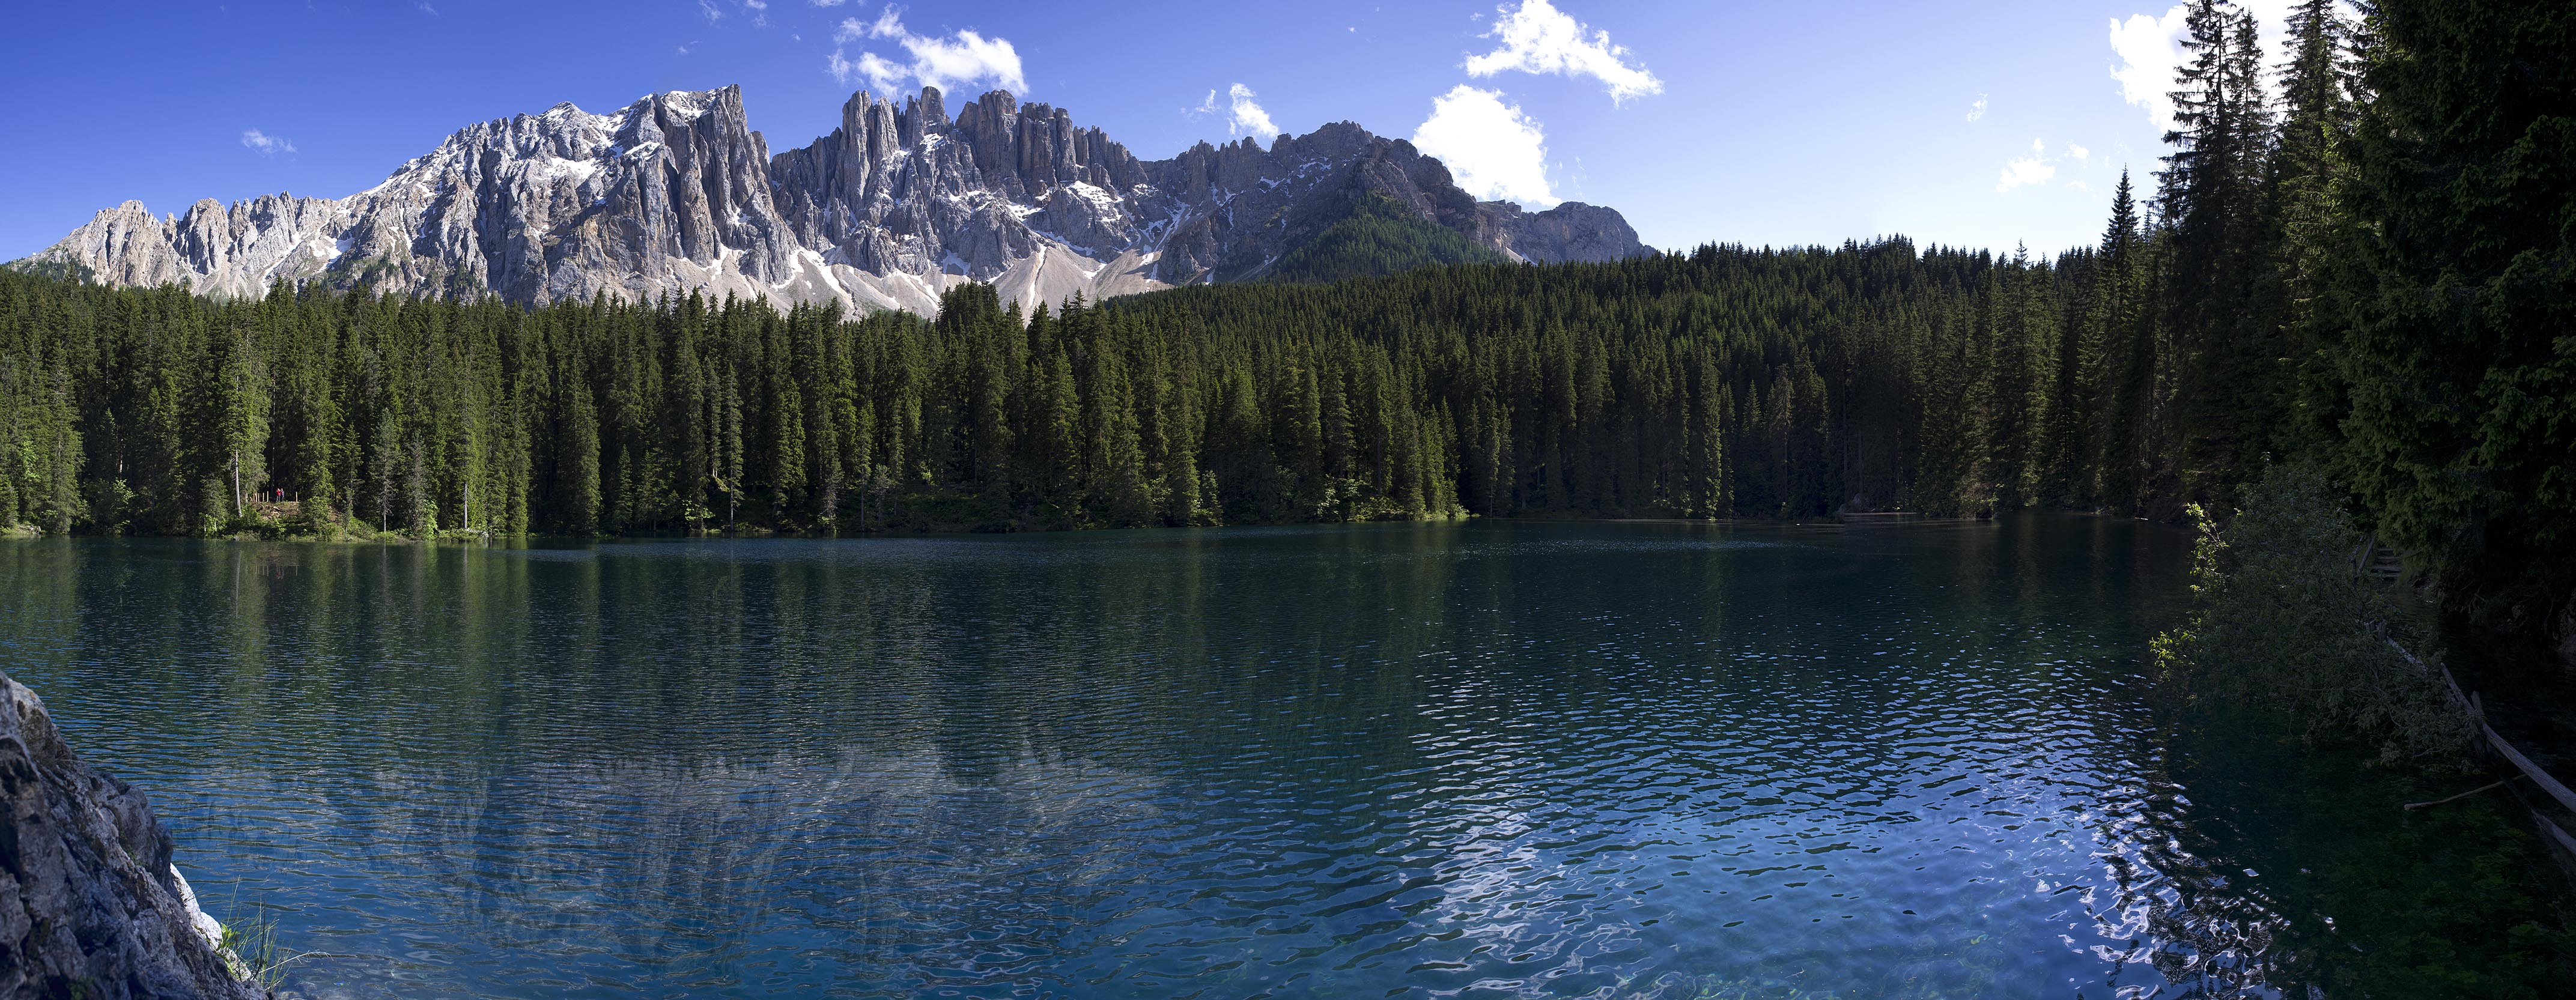 Lake of Carezza in the heart of Dolomites